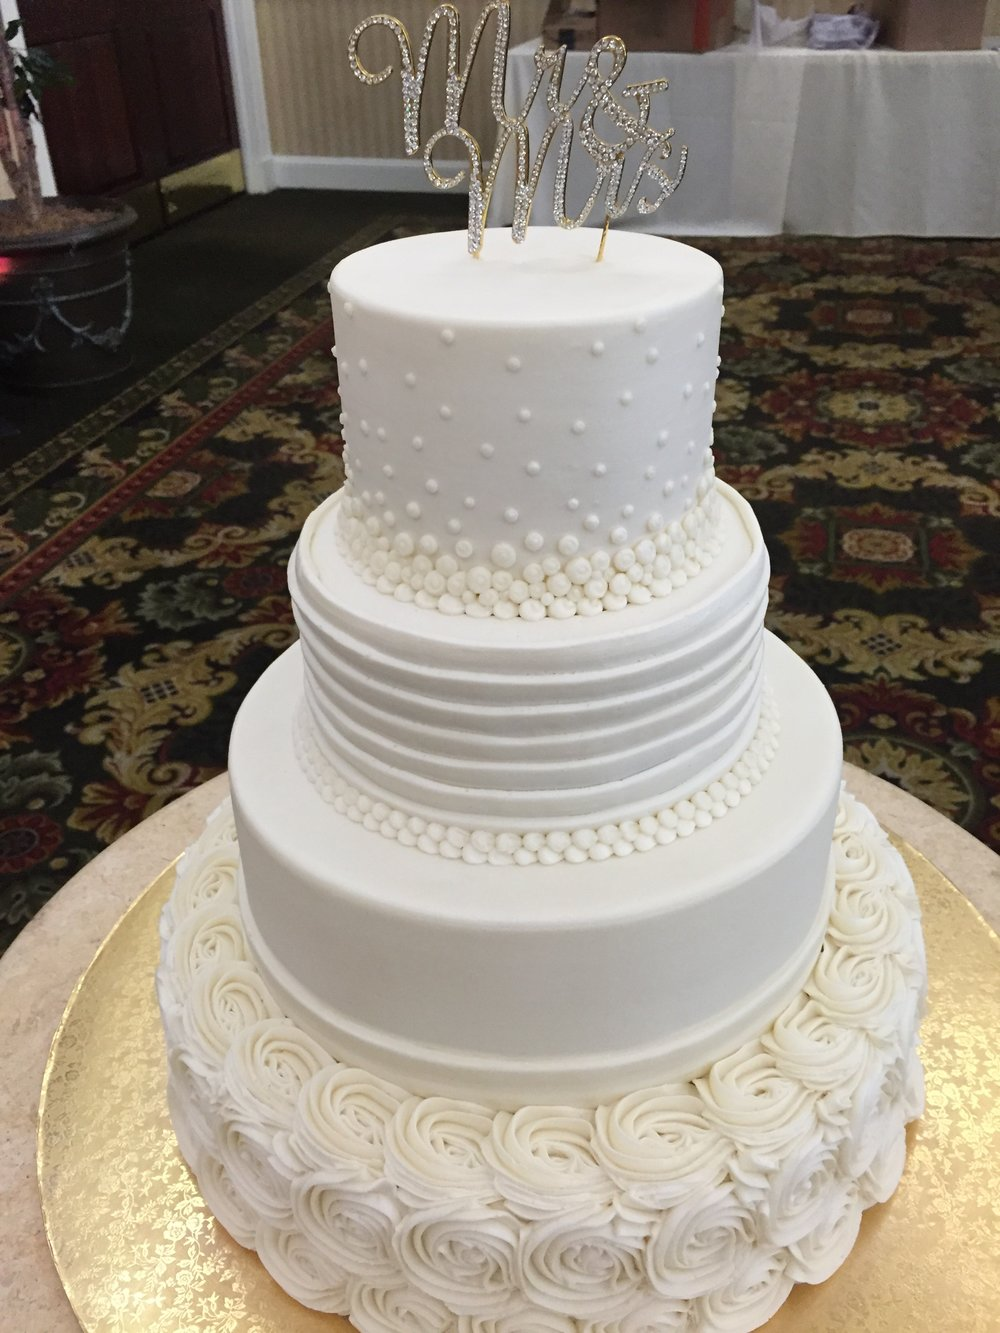 Wedding Cakes 610-626-7900 — SophistiCakes